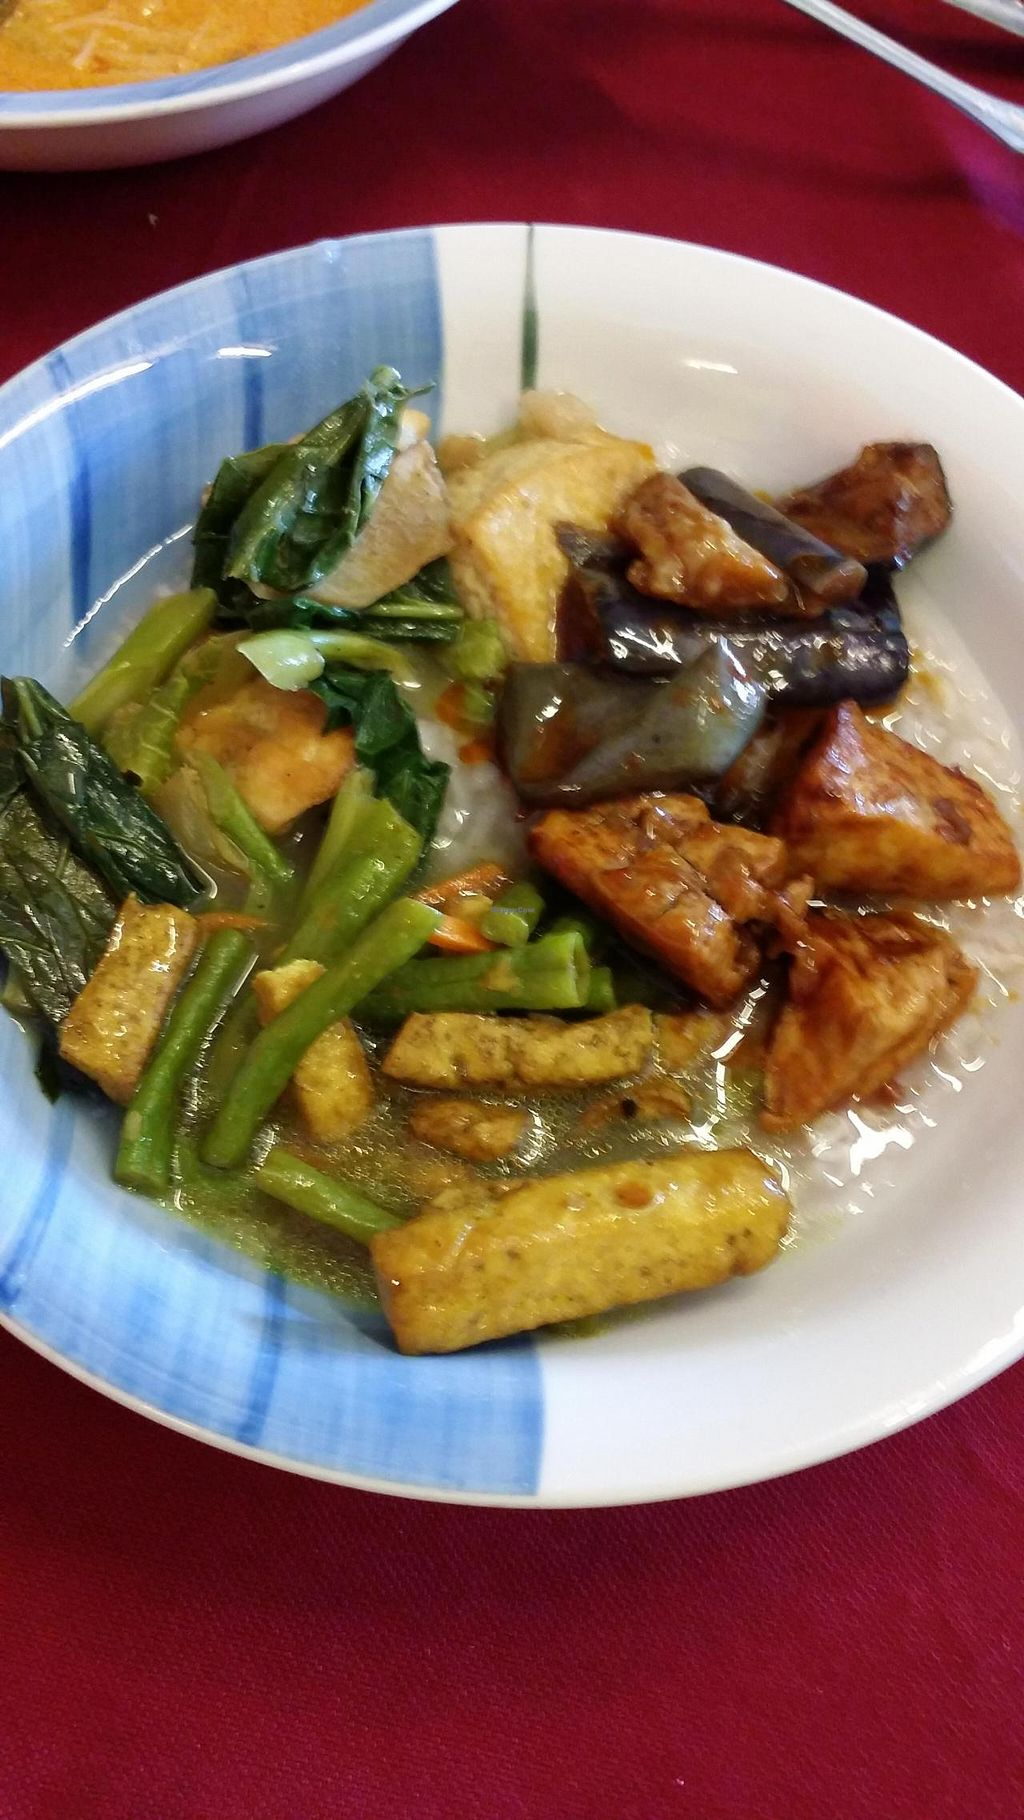 """Photo of Langkawi Vegetarian Restaurant  by <a href=""""/members/profile/walter007"""">walter007</a> <br/>Food <br/> July 23, 2014  - <a href='/contact/abuse/image/49124/74757'>Report</a>"""